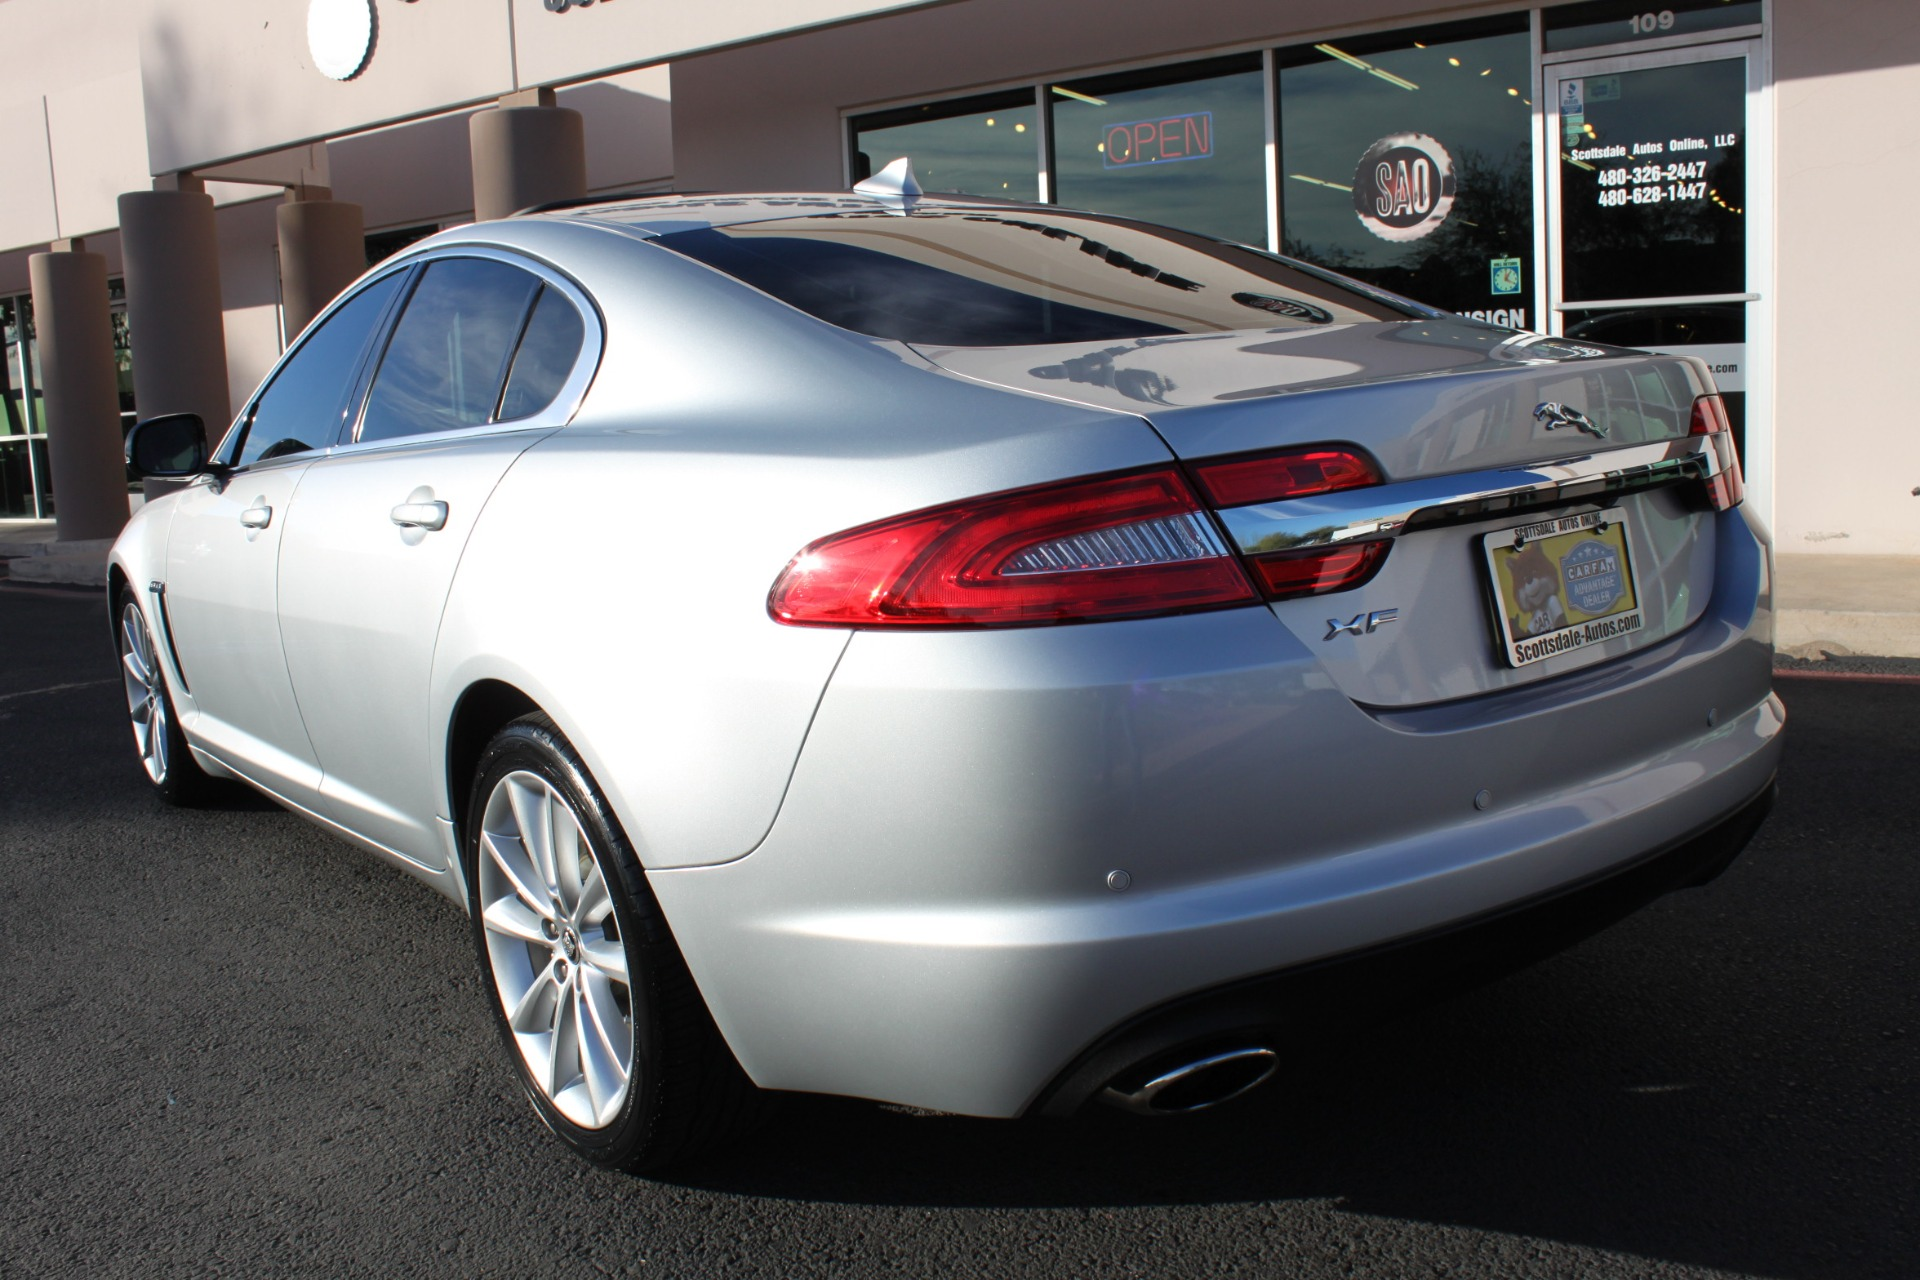 Used-2013-Jaguar-XF-I4-RWD-Grand-Wagoneer